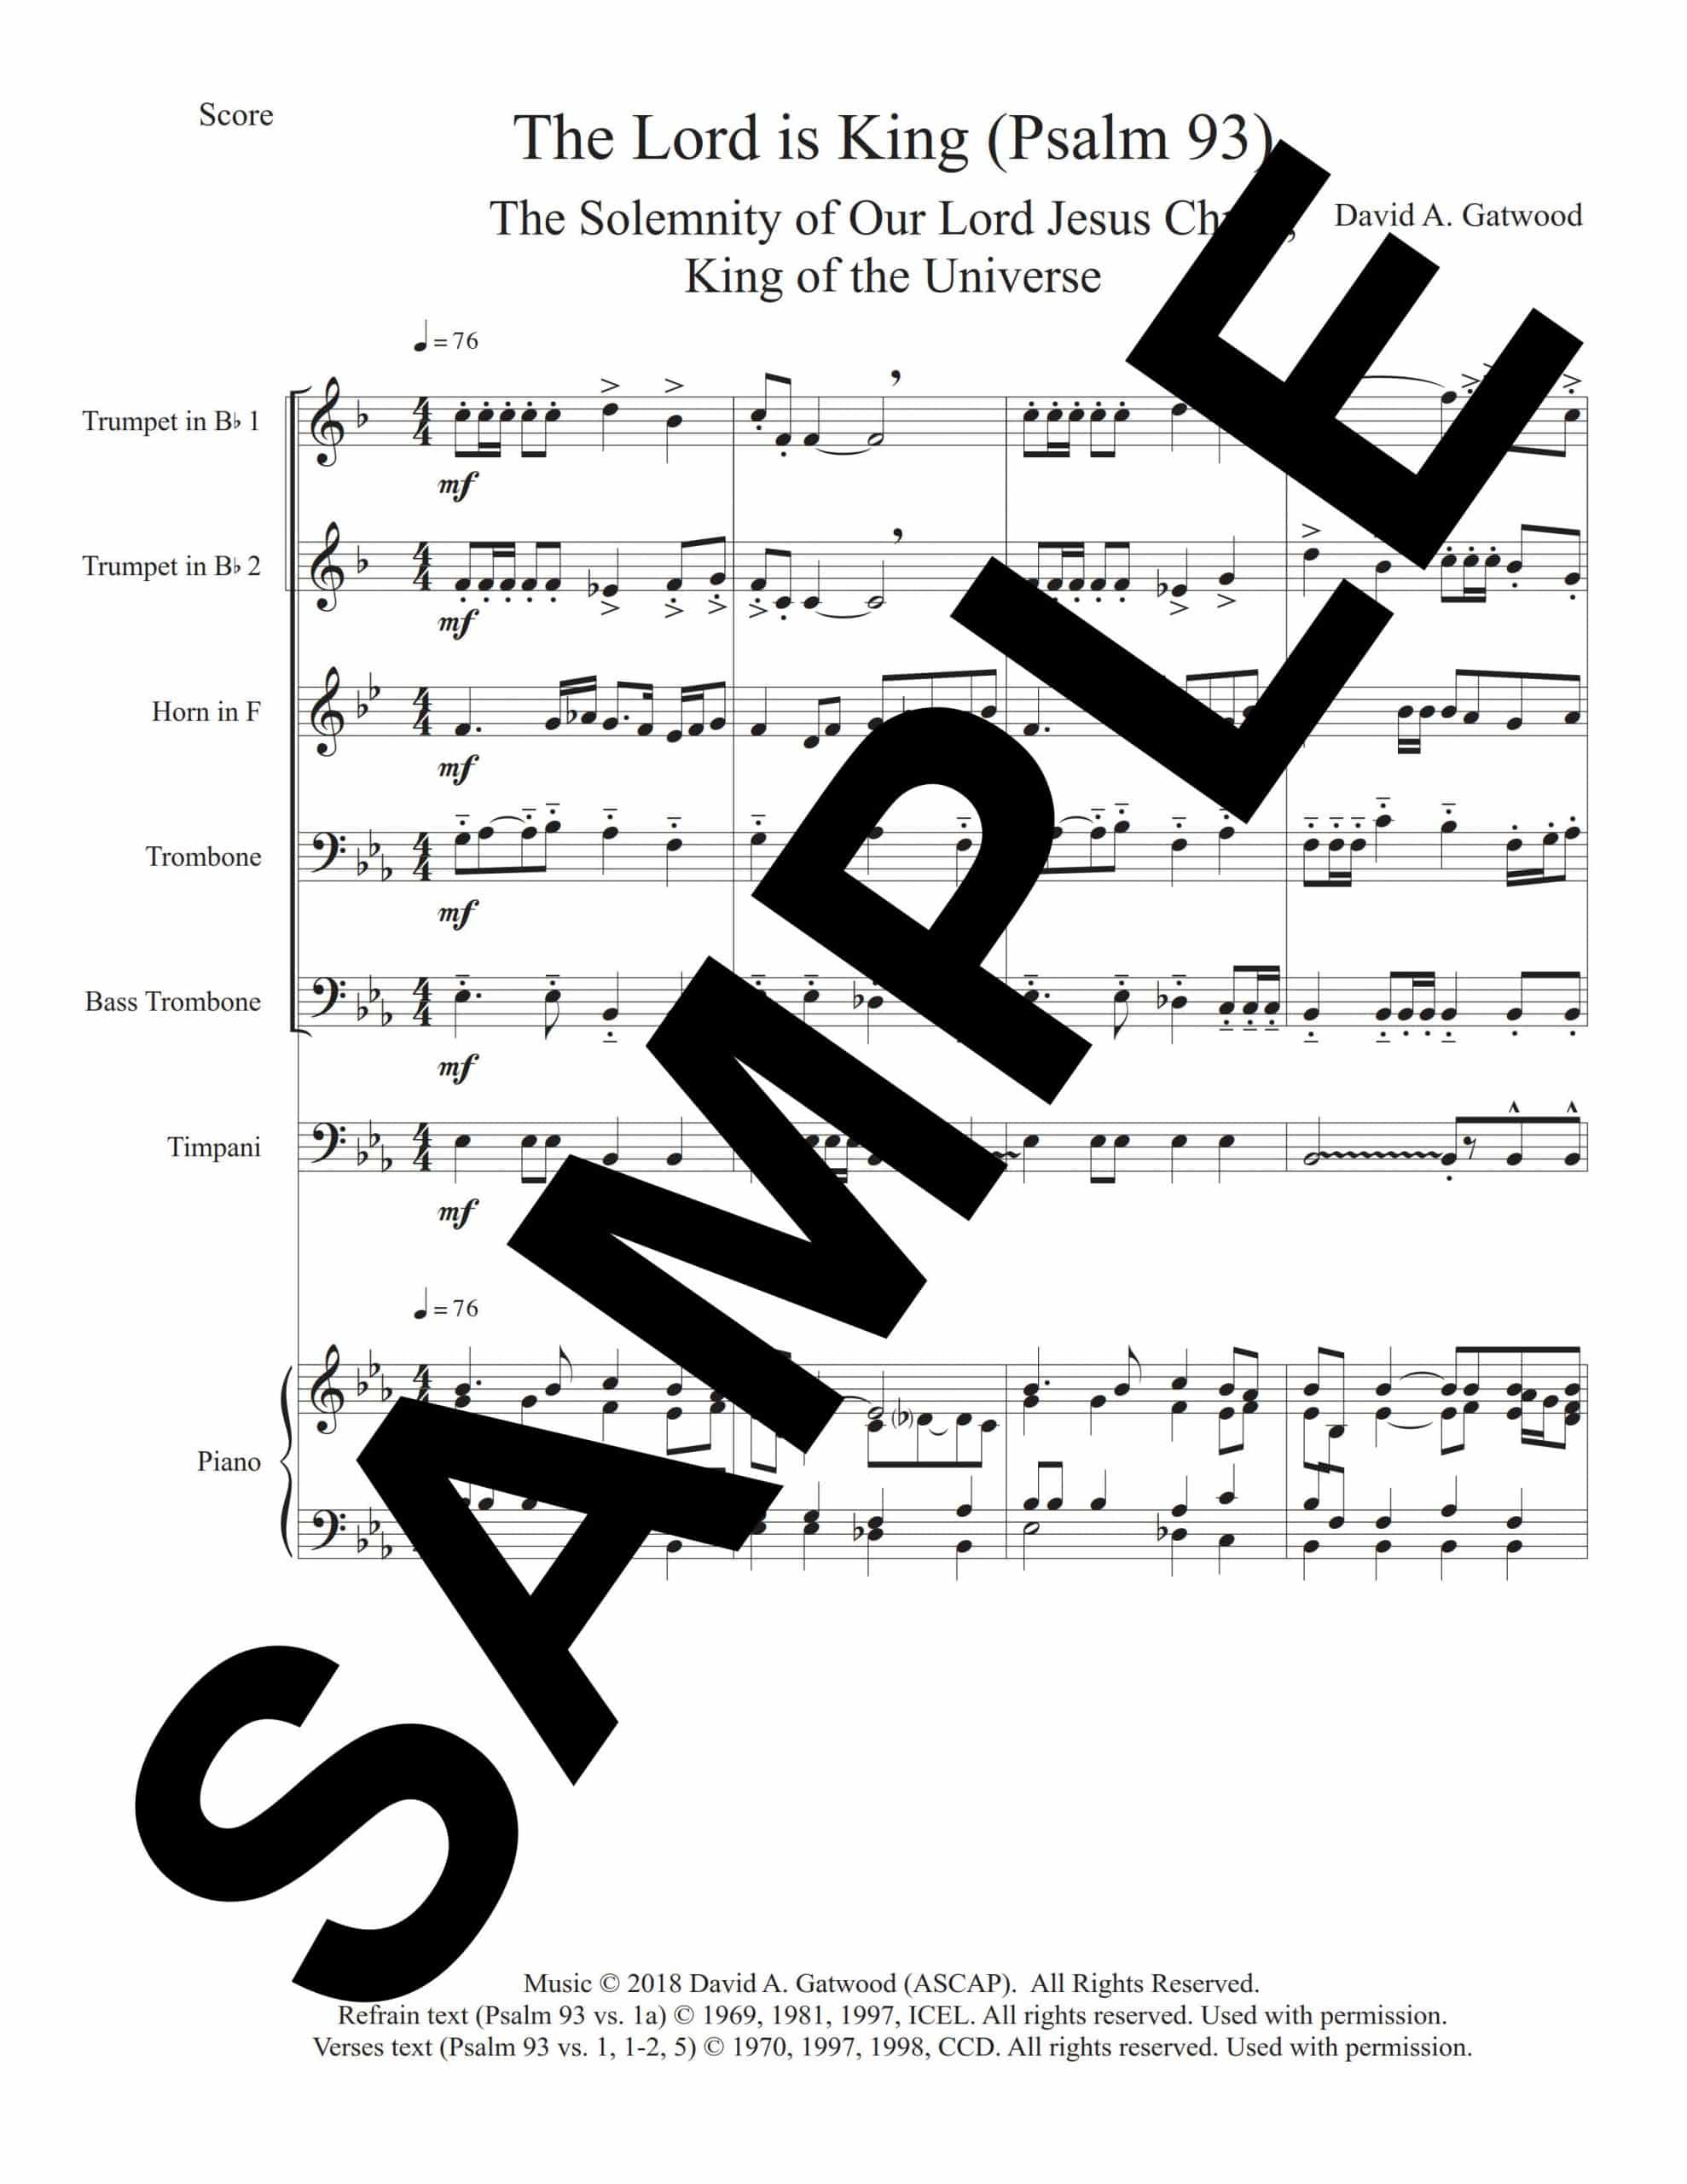 The Lord Is King Psalm 93 Sample Score scaled